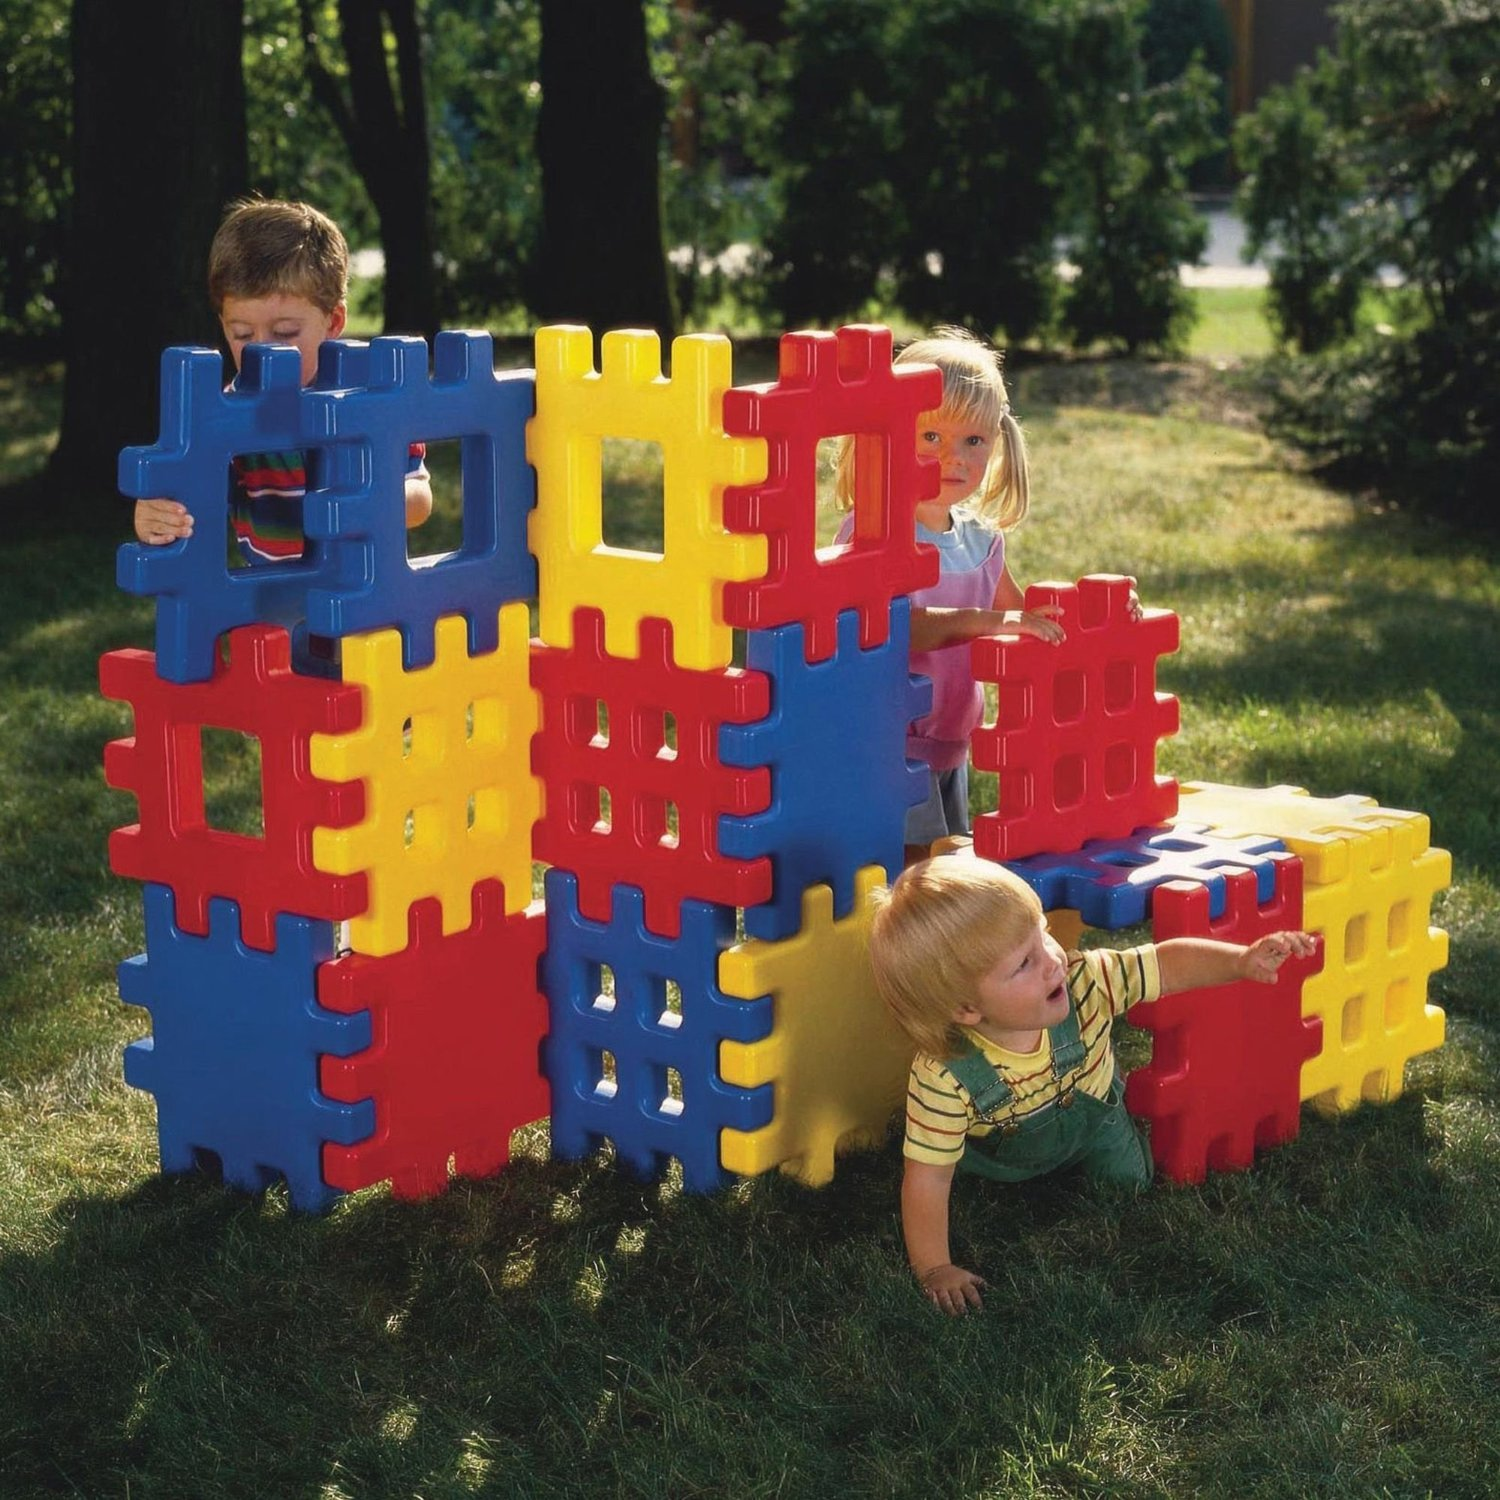 Big Waffle Blocks By Little Tikes (18 Classic Jumbo Waffle Blocks) little tikes мульти горка little tikes